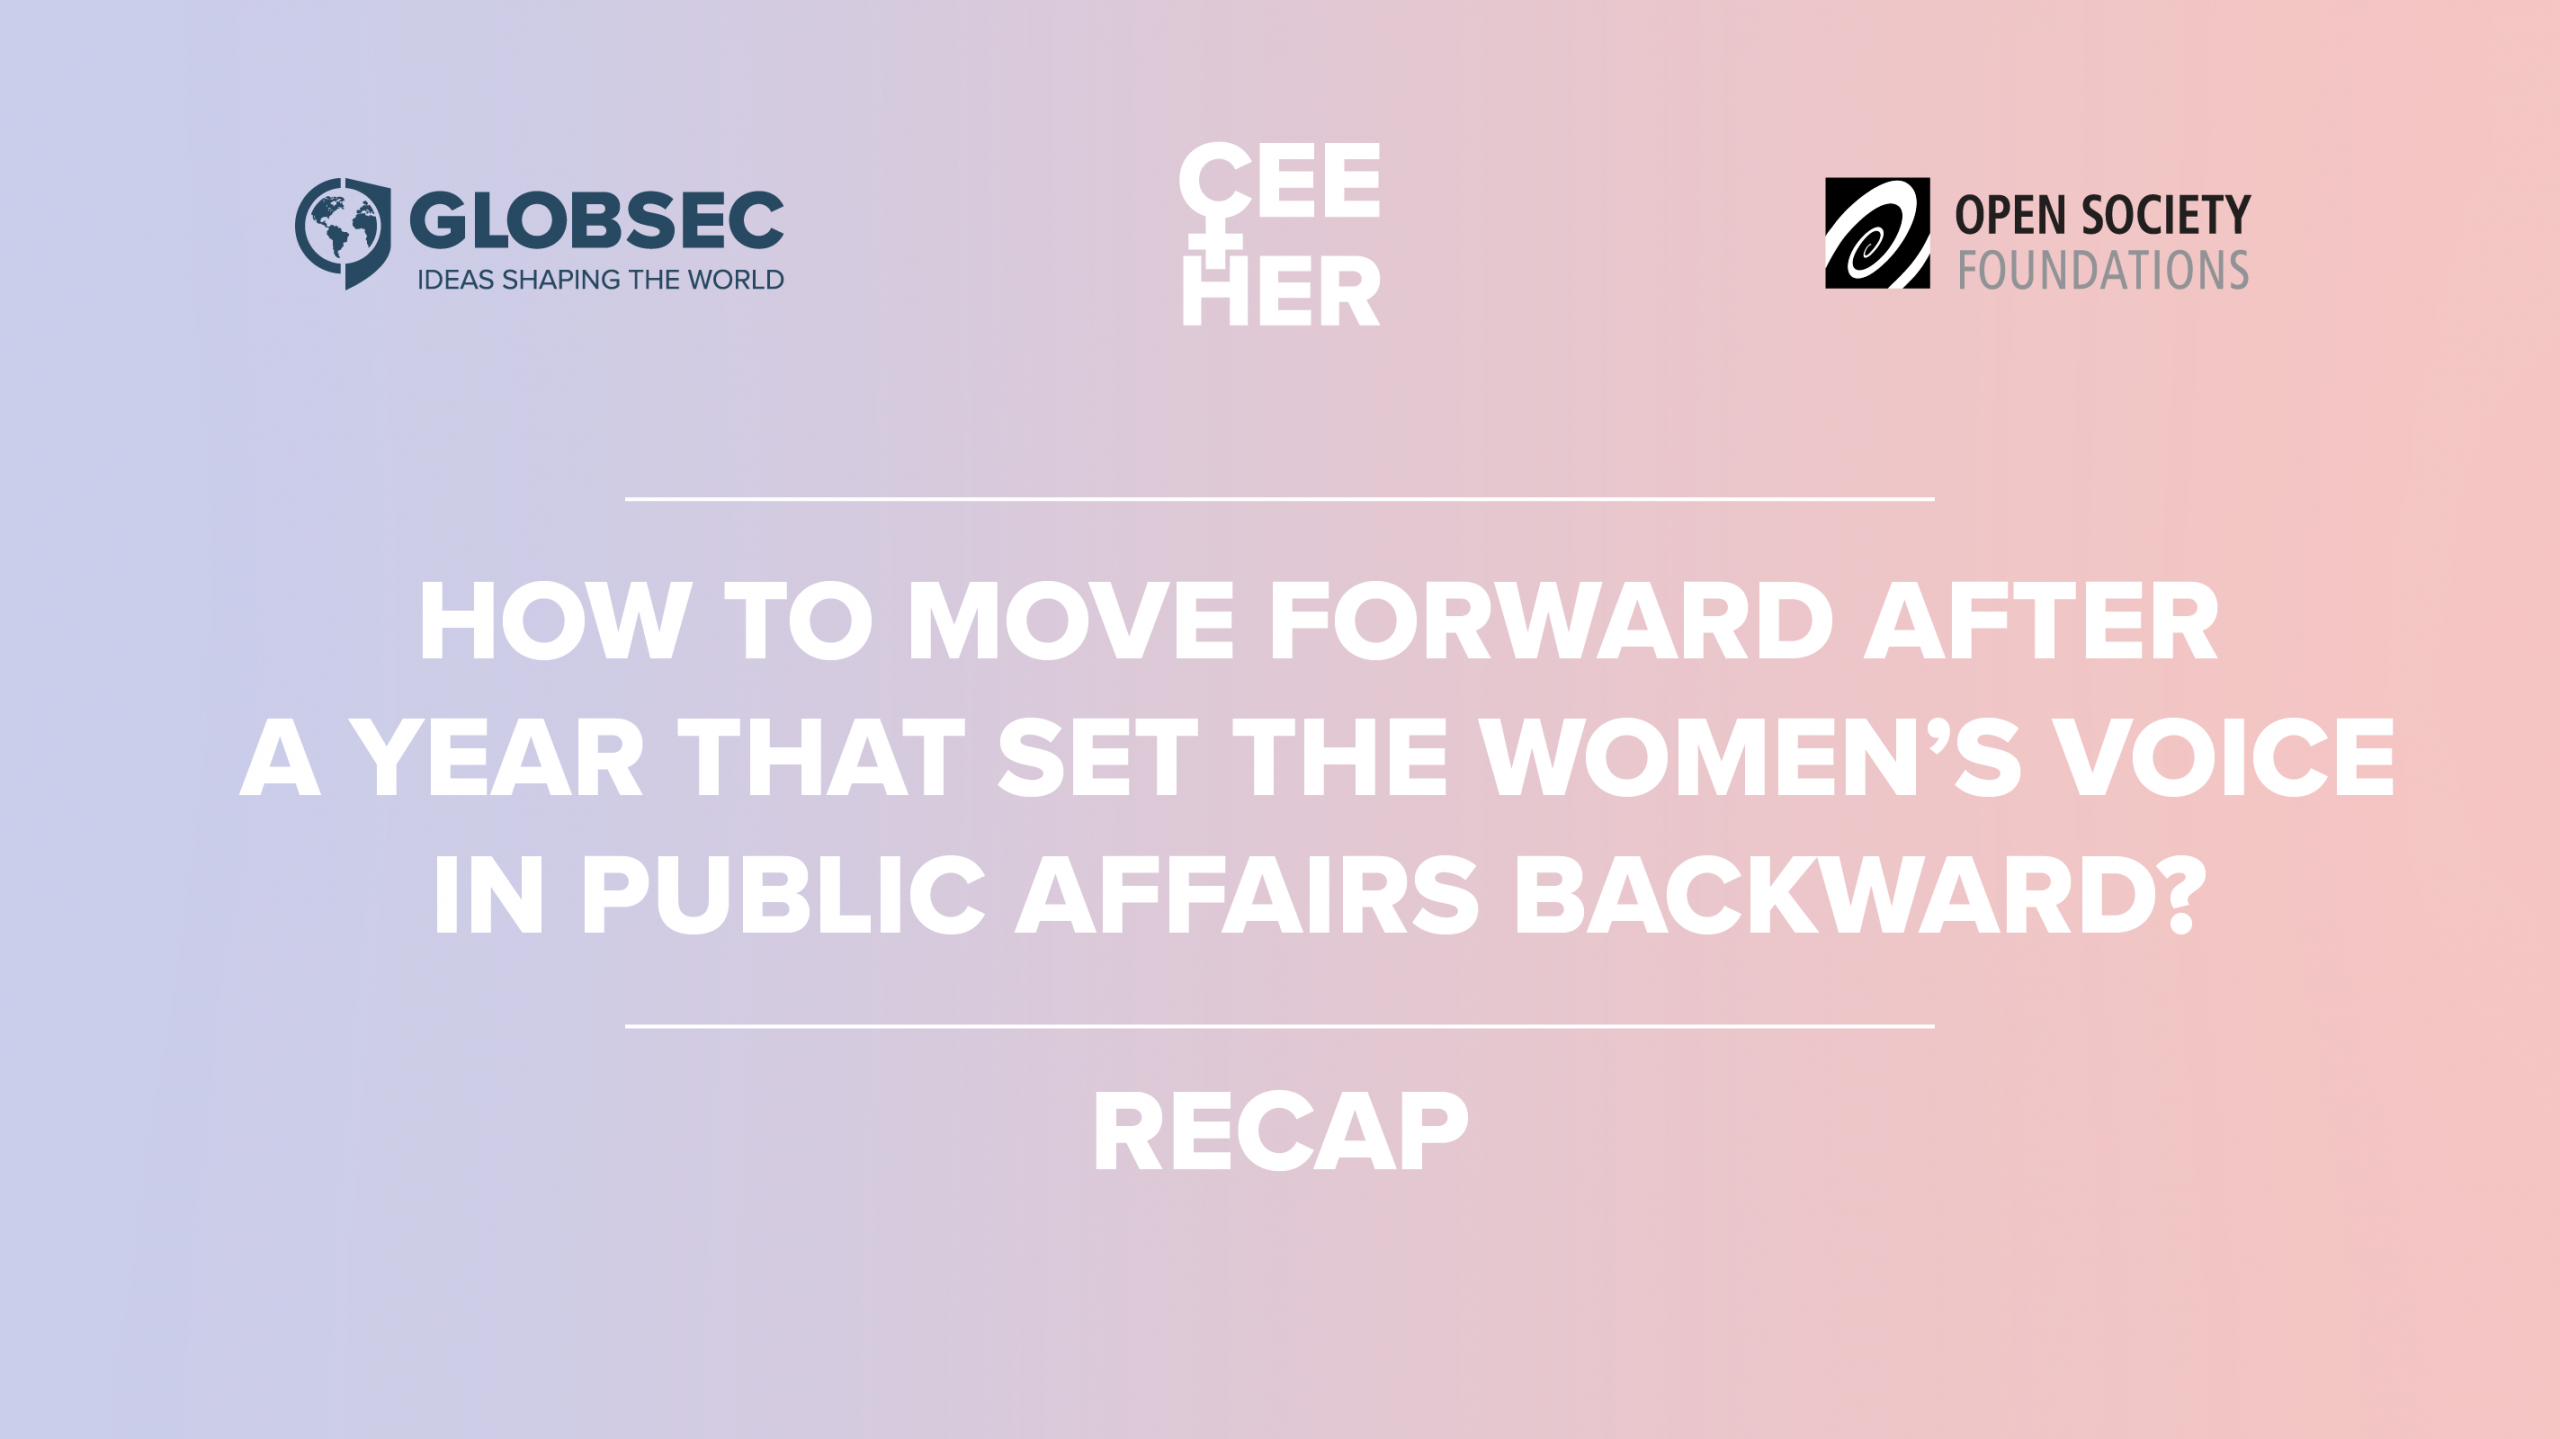 How to Move Forward After a Year that Set the Women's Voice in Public Affairs Backward? - Main Takeaways